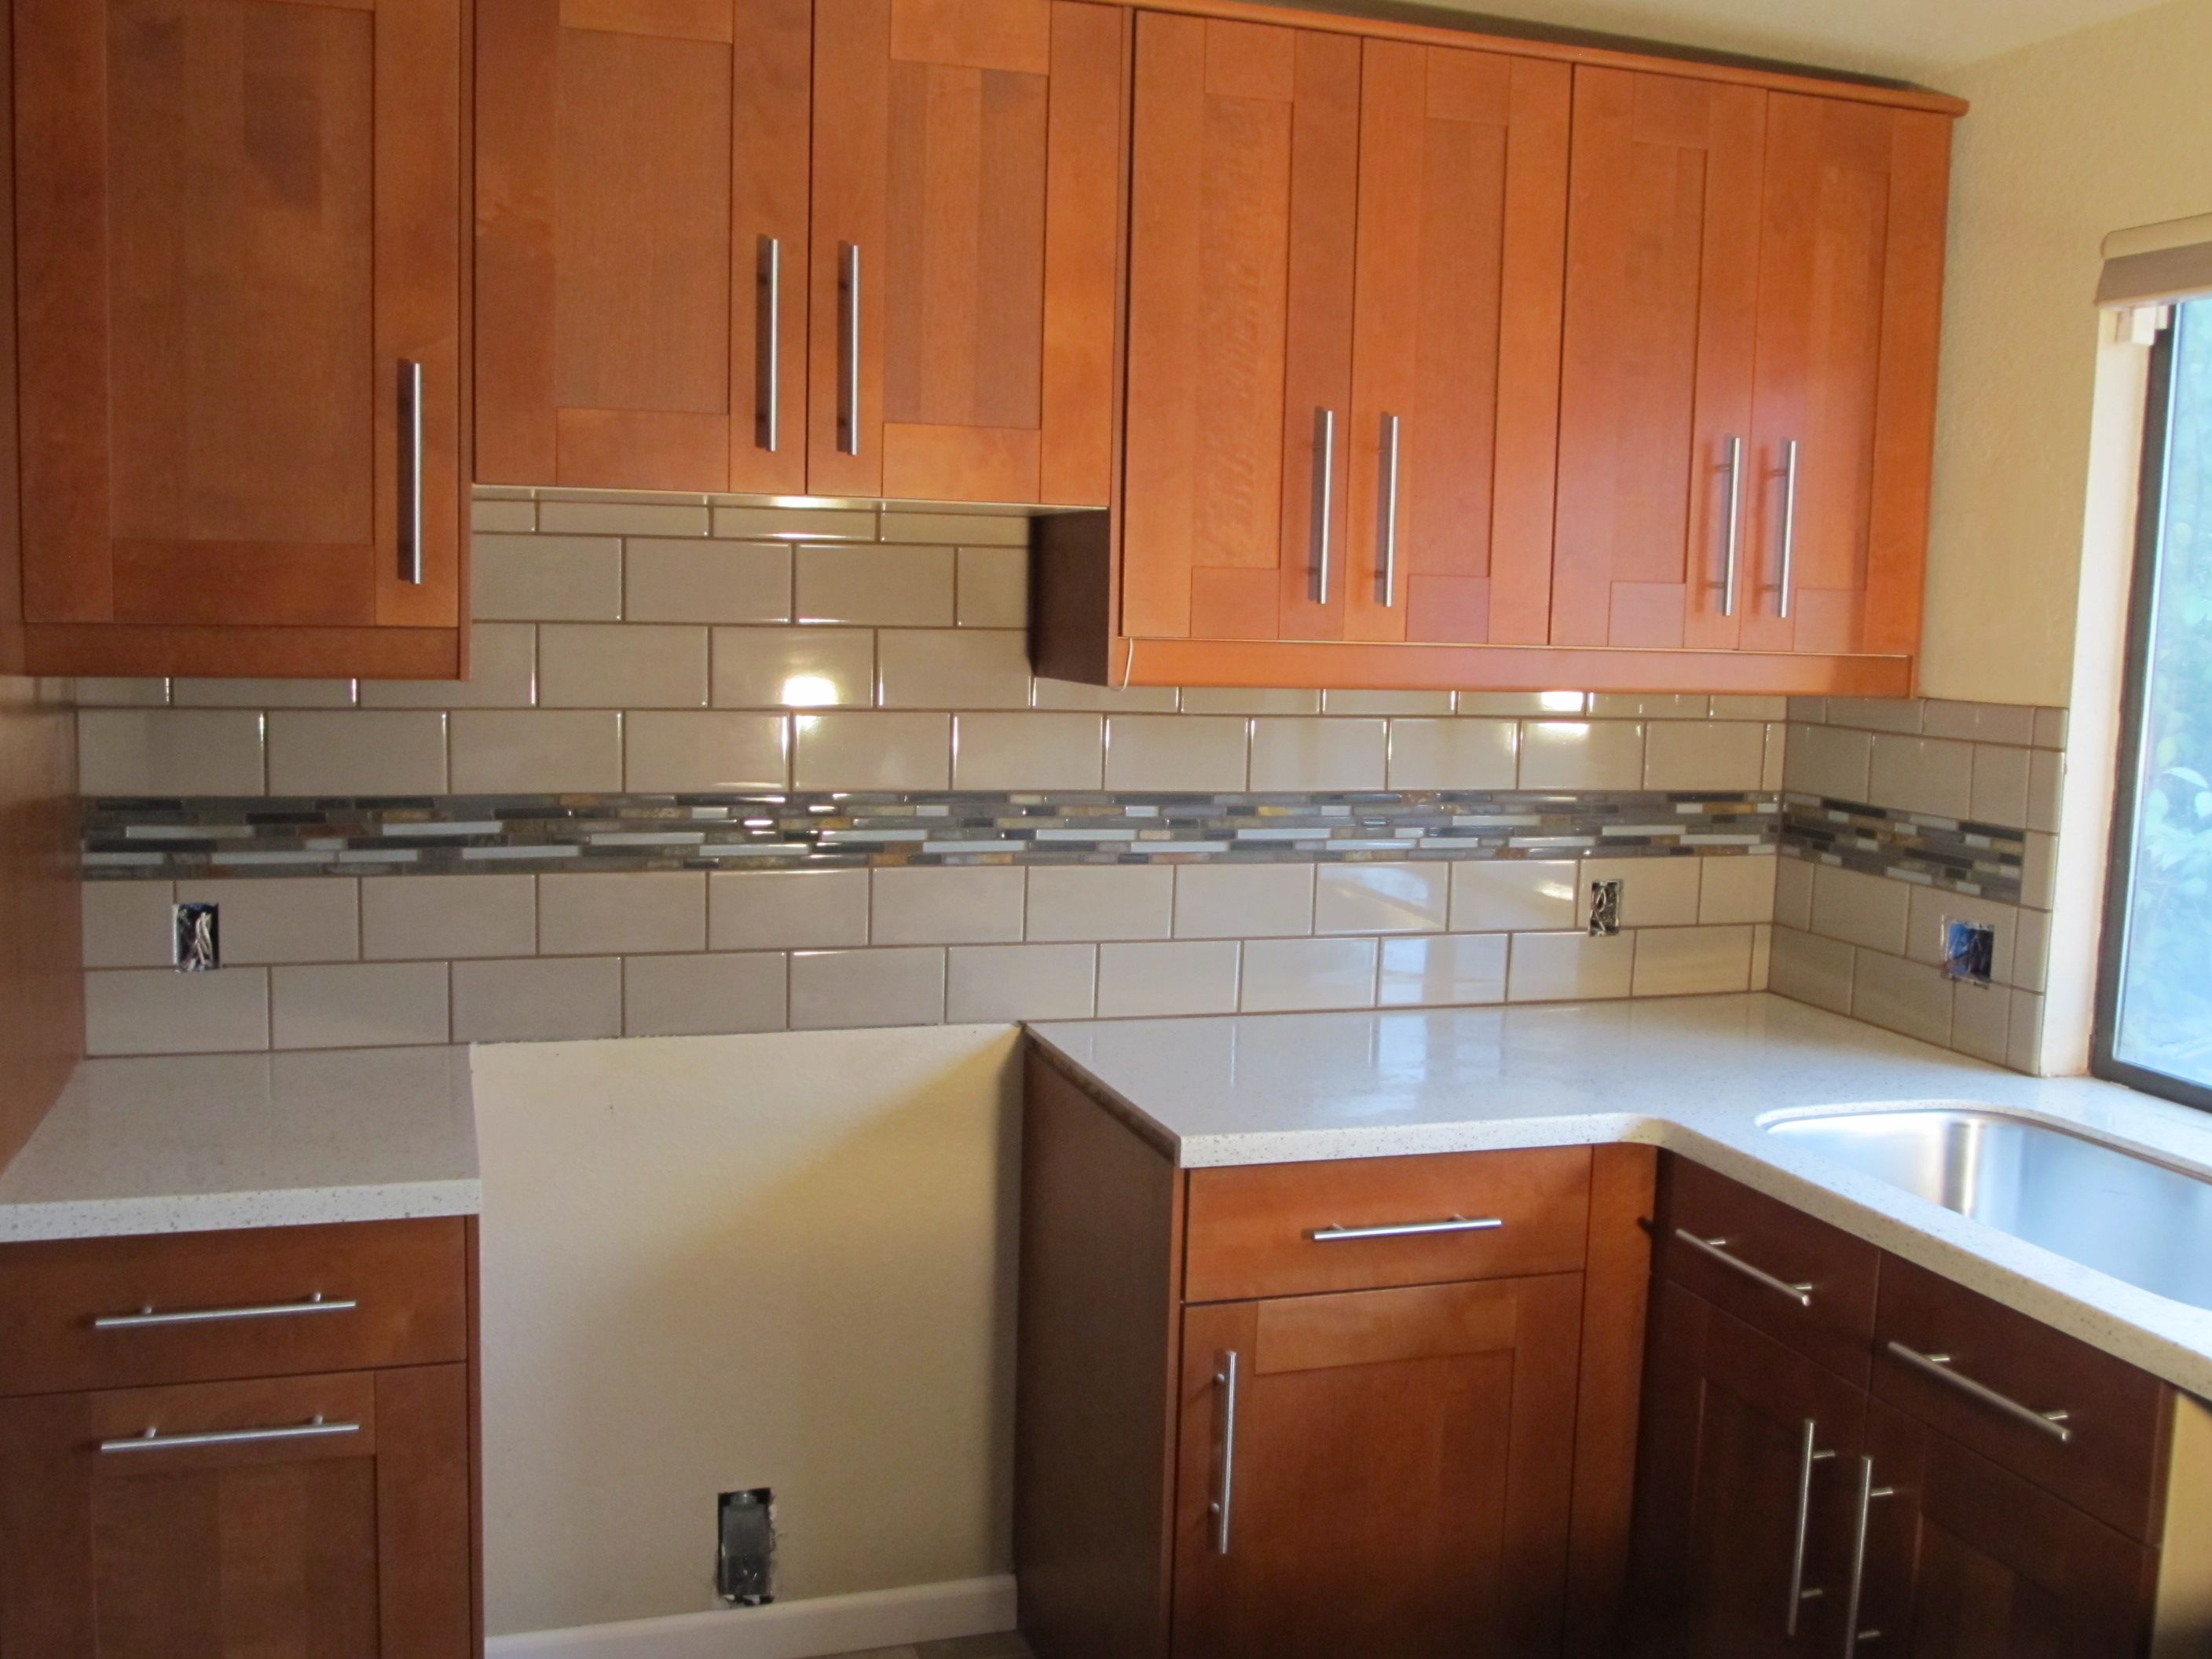 Subway Tile Kitchen Backsplash Ideas is one of the home